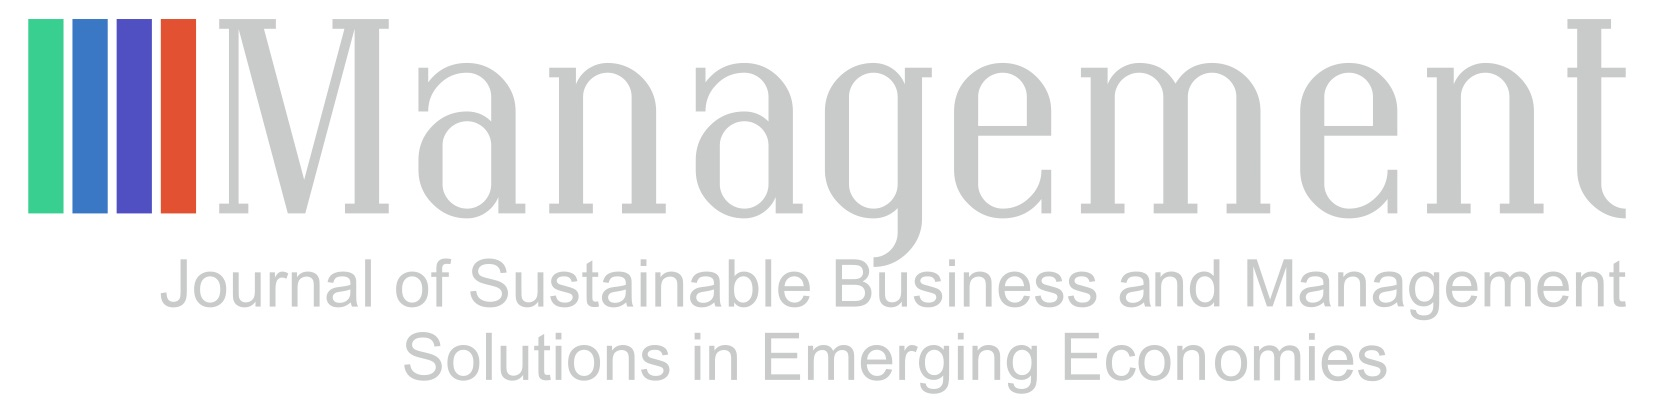 Management: Journal of Sustainable Business and Management Solutions in Emerging Economies Cover Image